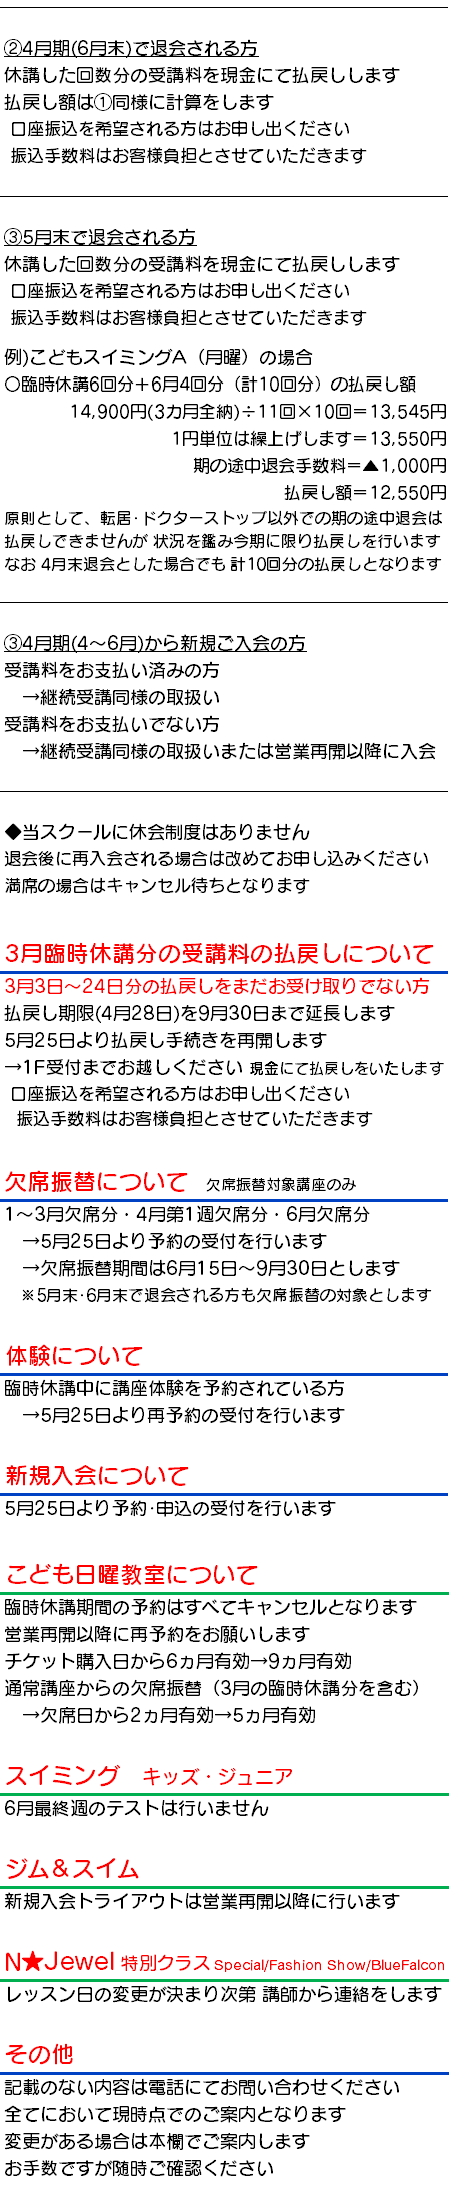 20200518-1-3.png